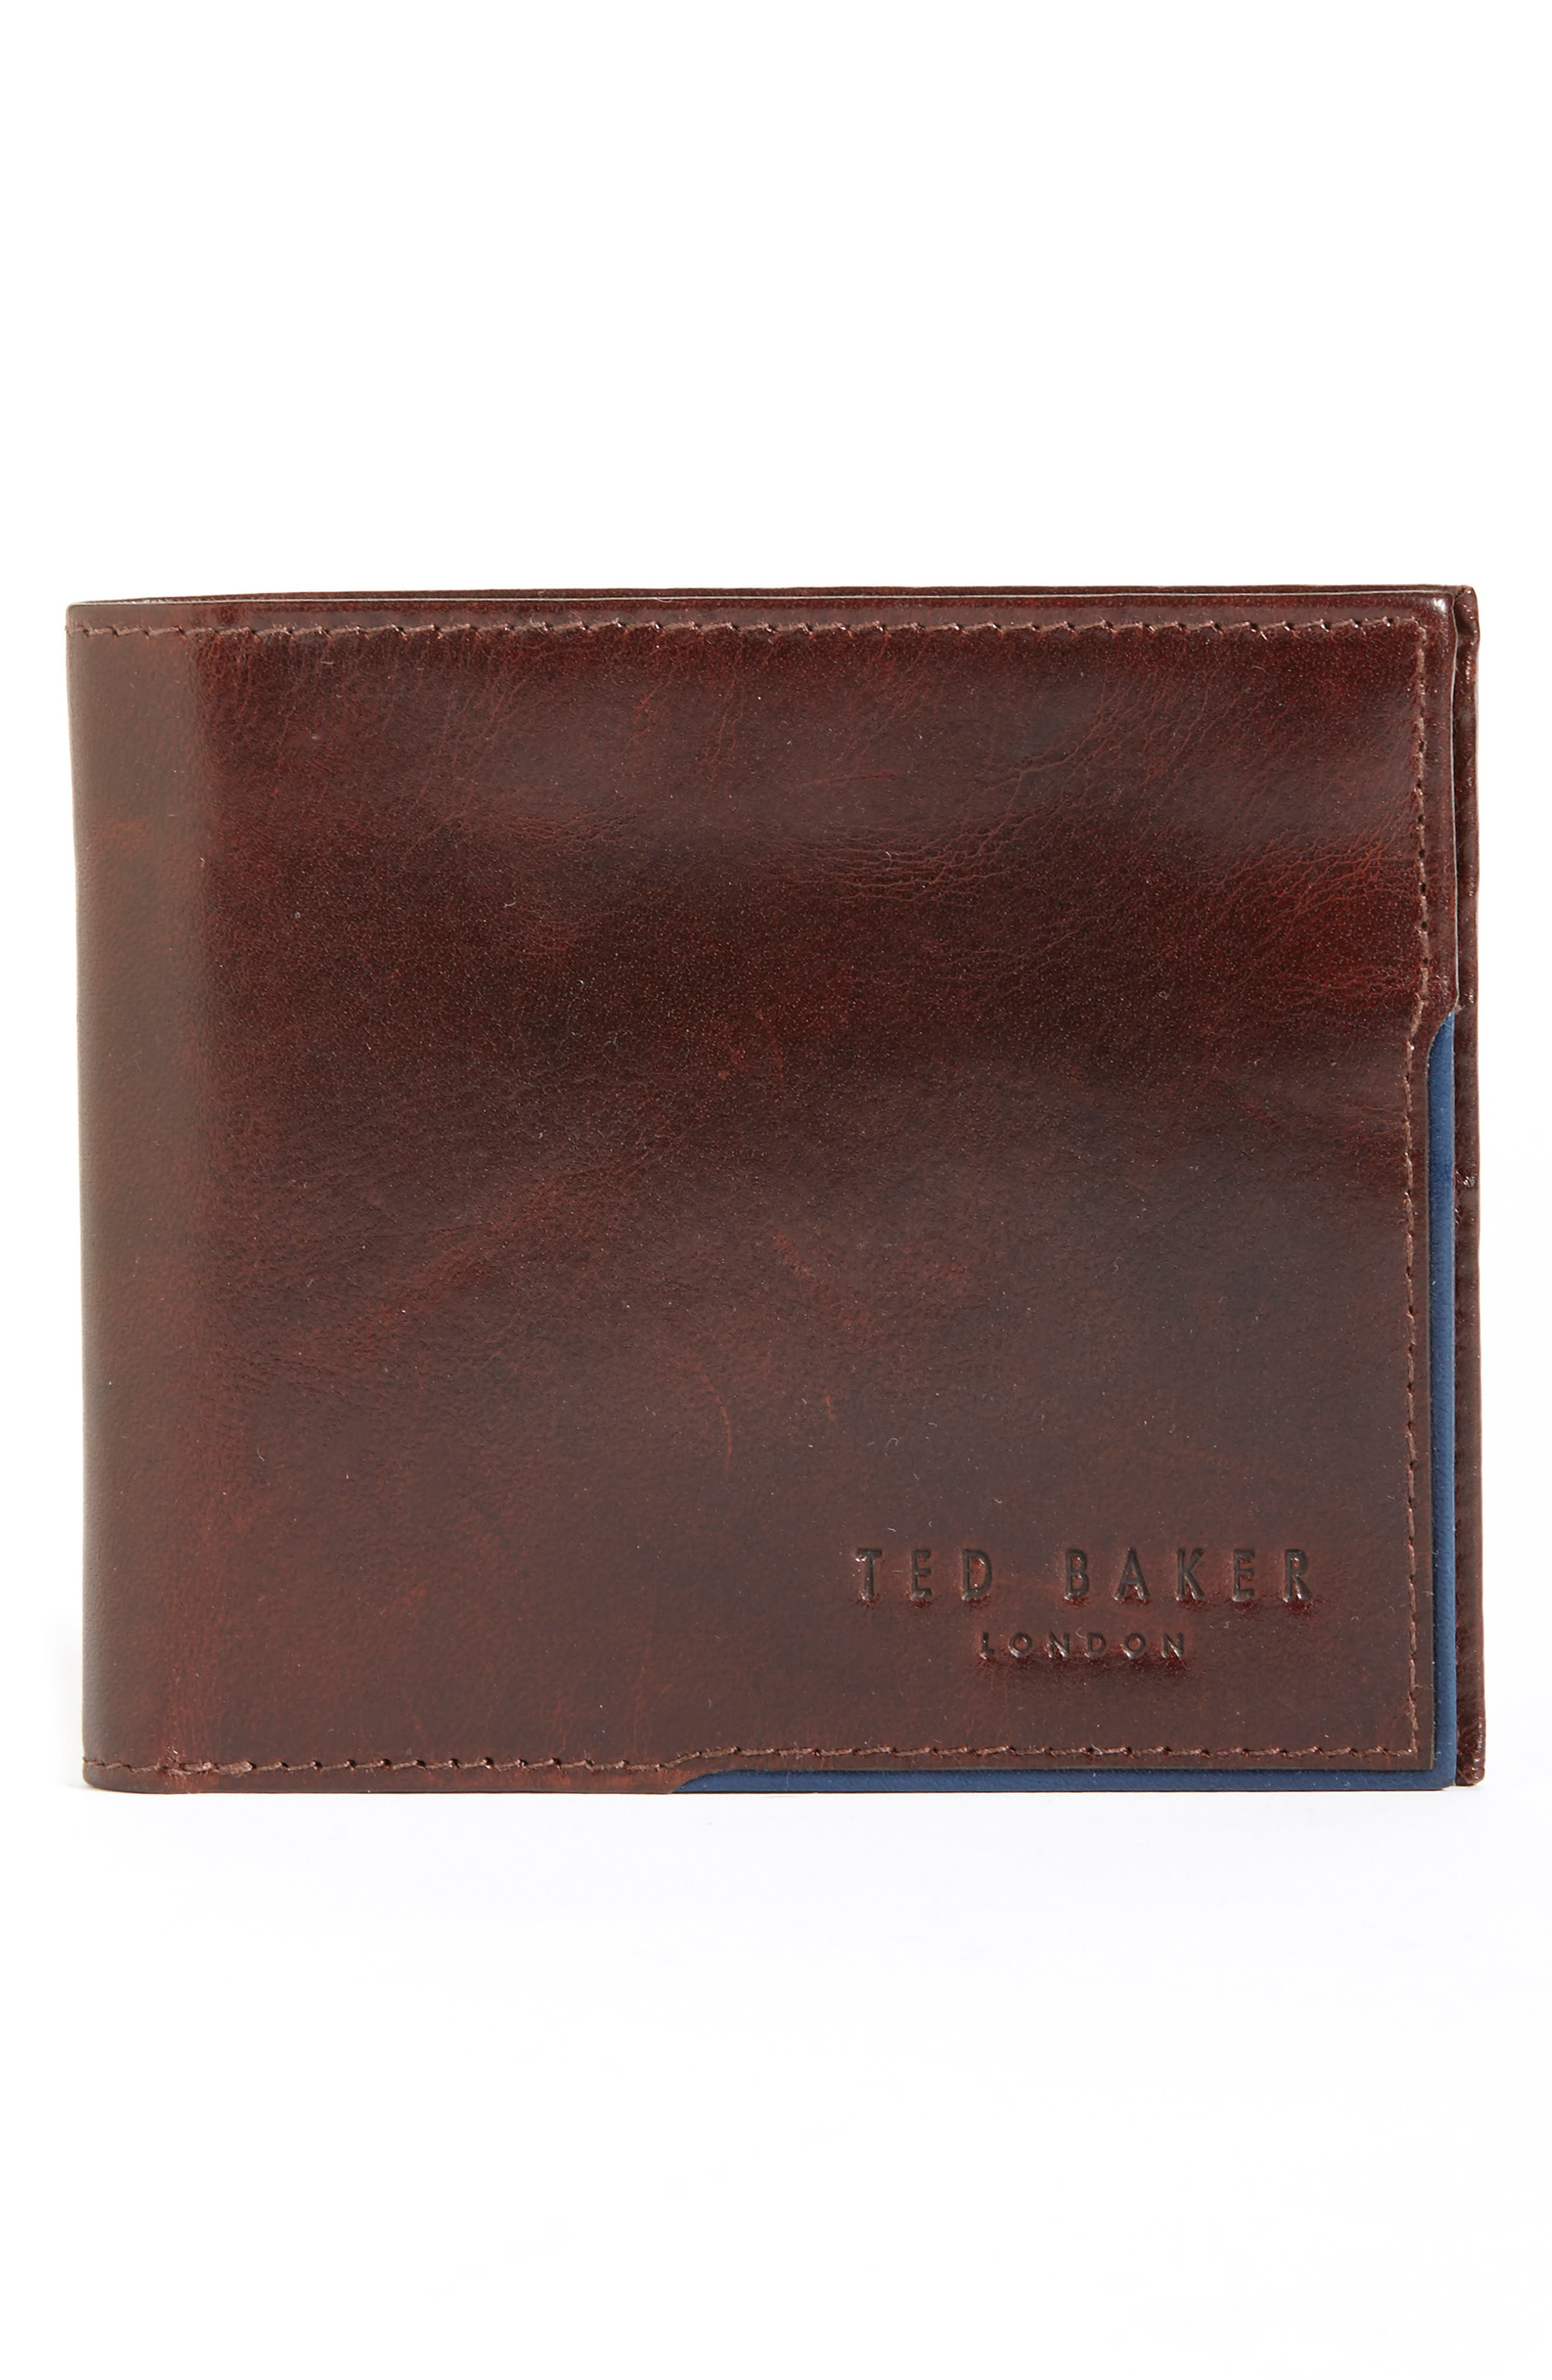 Carouse Leather Wallet,                         Main,                         color, Tan